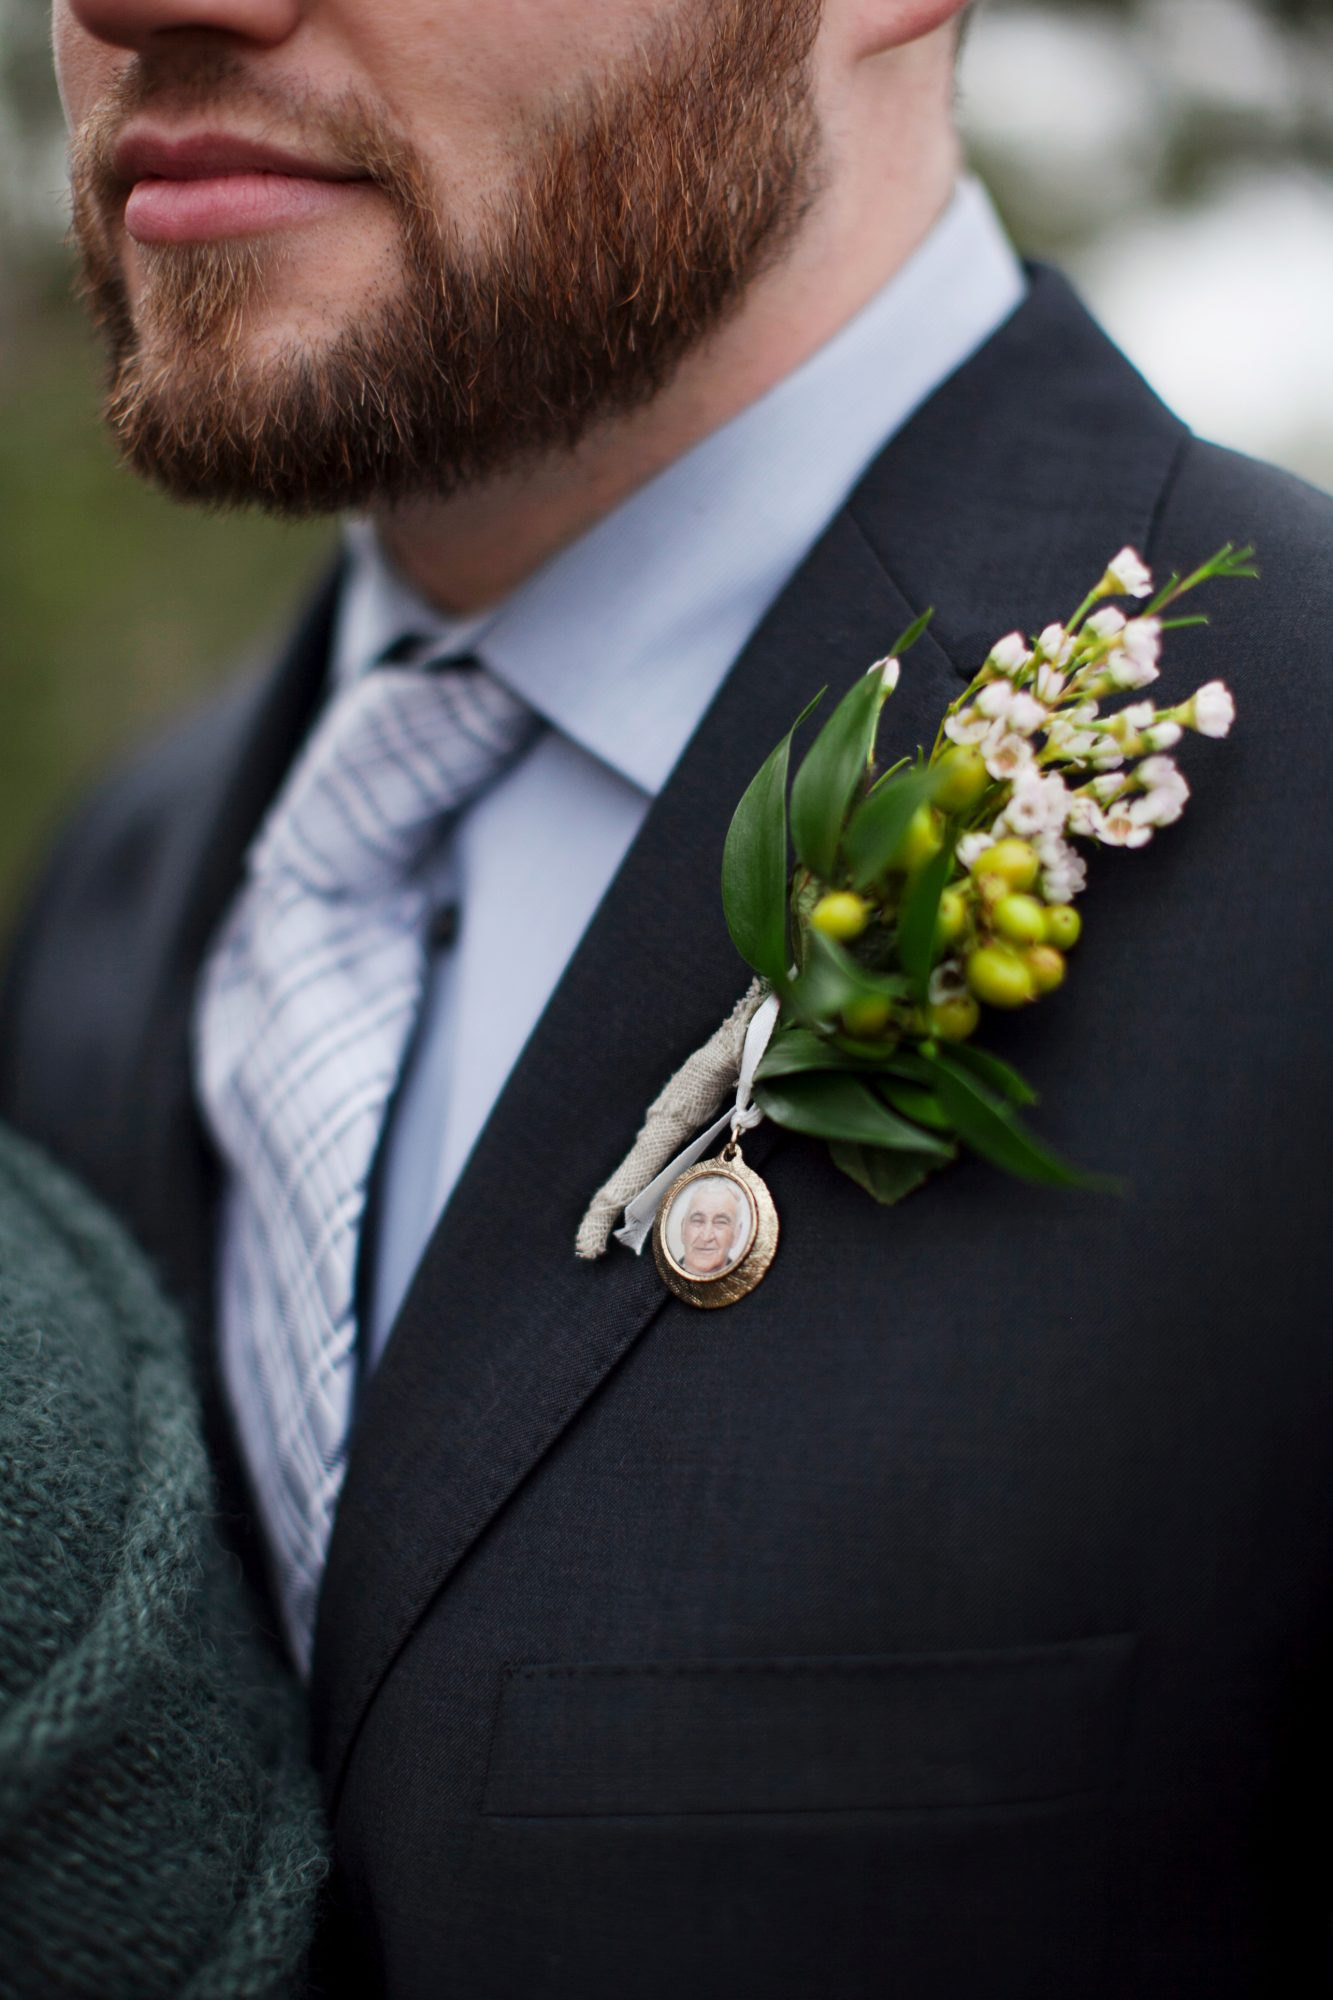 Boutonnière Photo